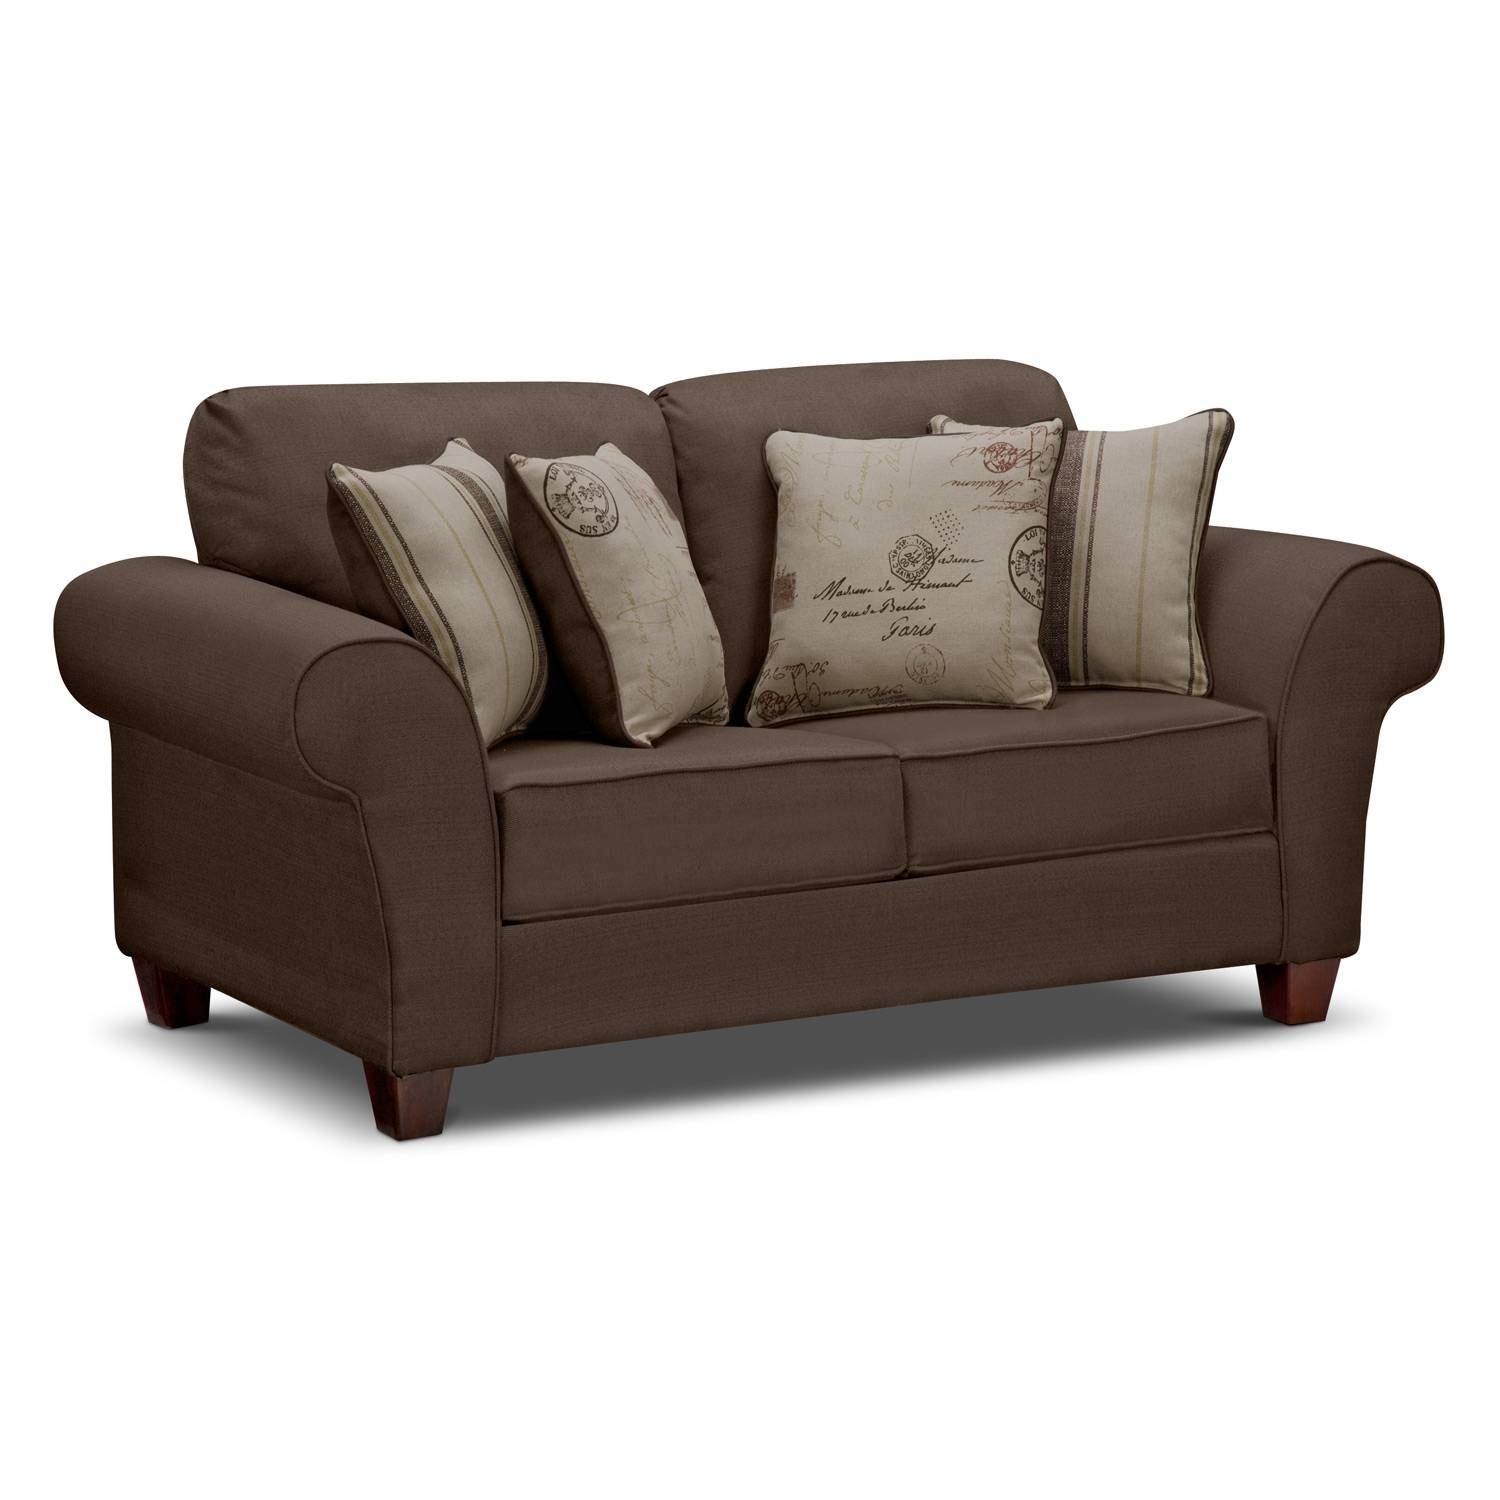 Sofas Center : Ikea Compact Couch Living Room Ideas Rooms intended for Very Small Sofas (Image 9 of 25)